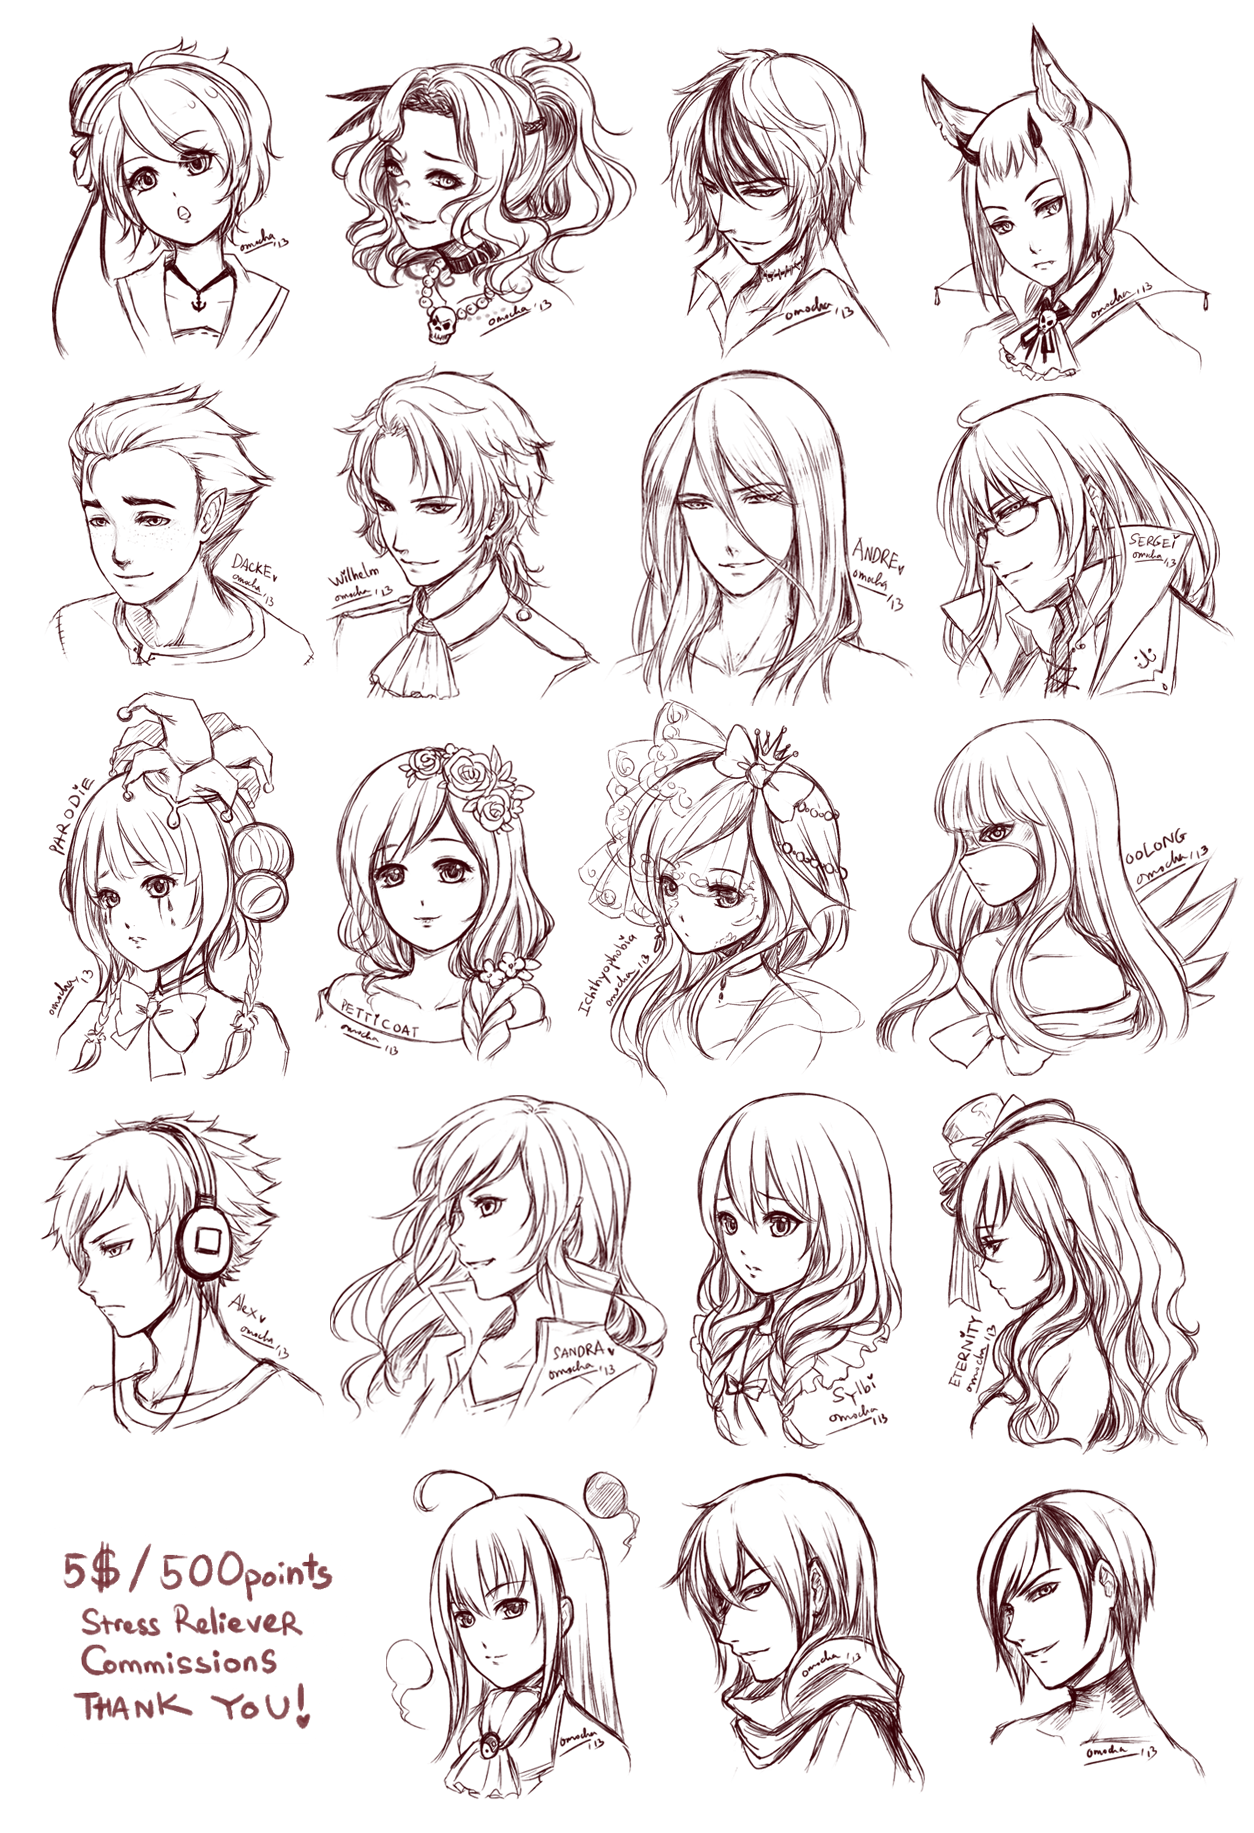 Src Batch7 By Zenithomocha On Deviantart Manga Hair Anime Hair How To Draw Hair